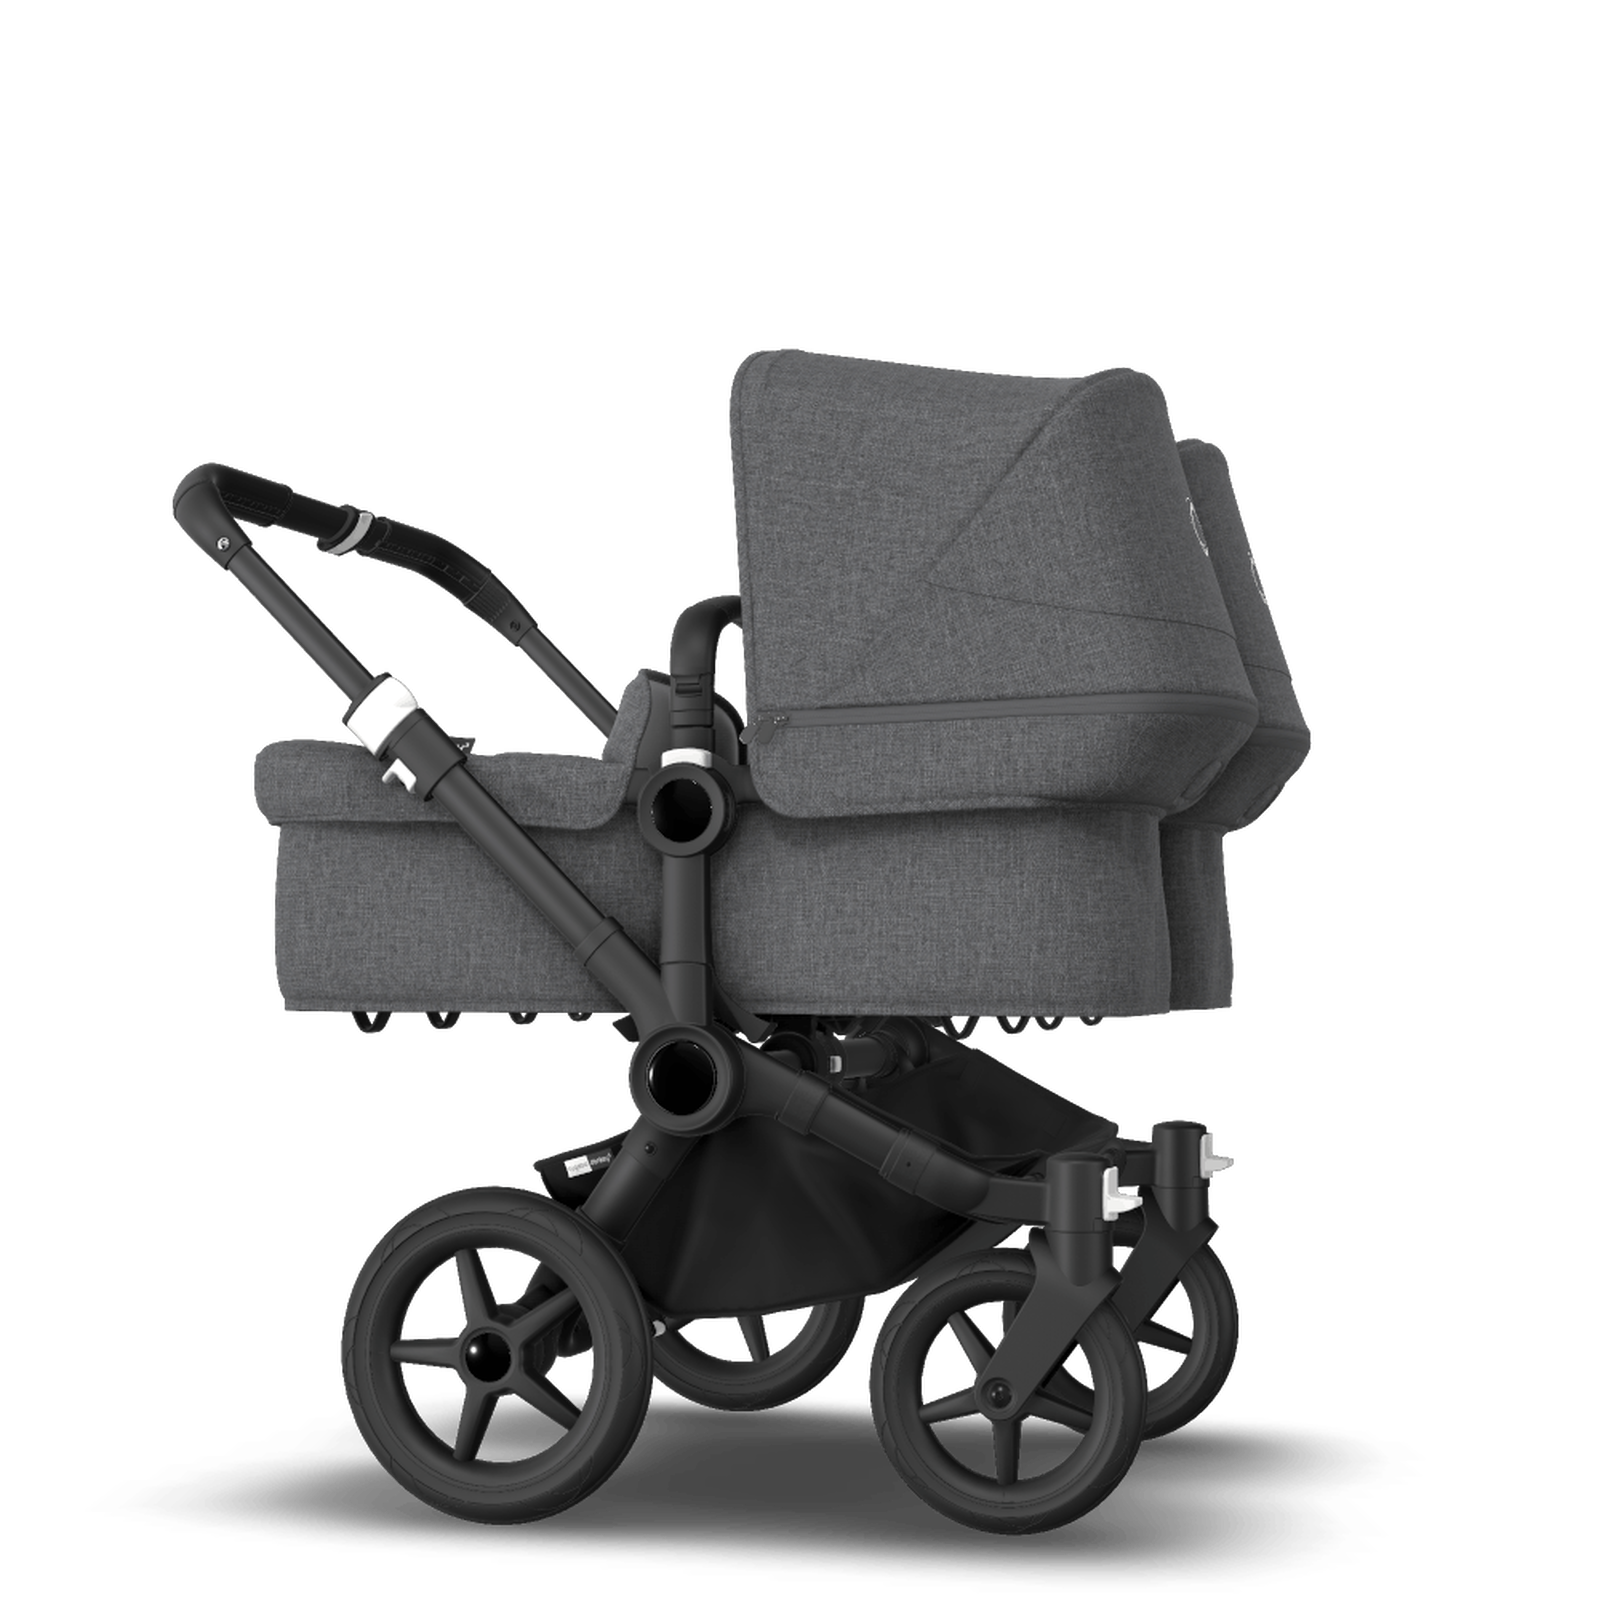 Bugaboo Donkey 3 Twin seat and carrycot pushchair